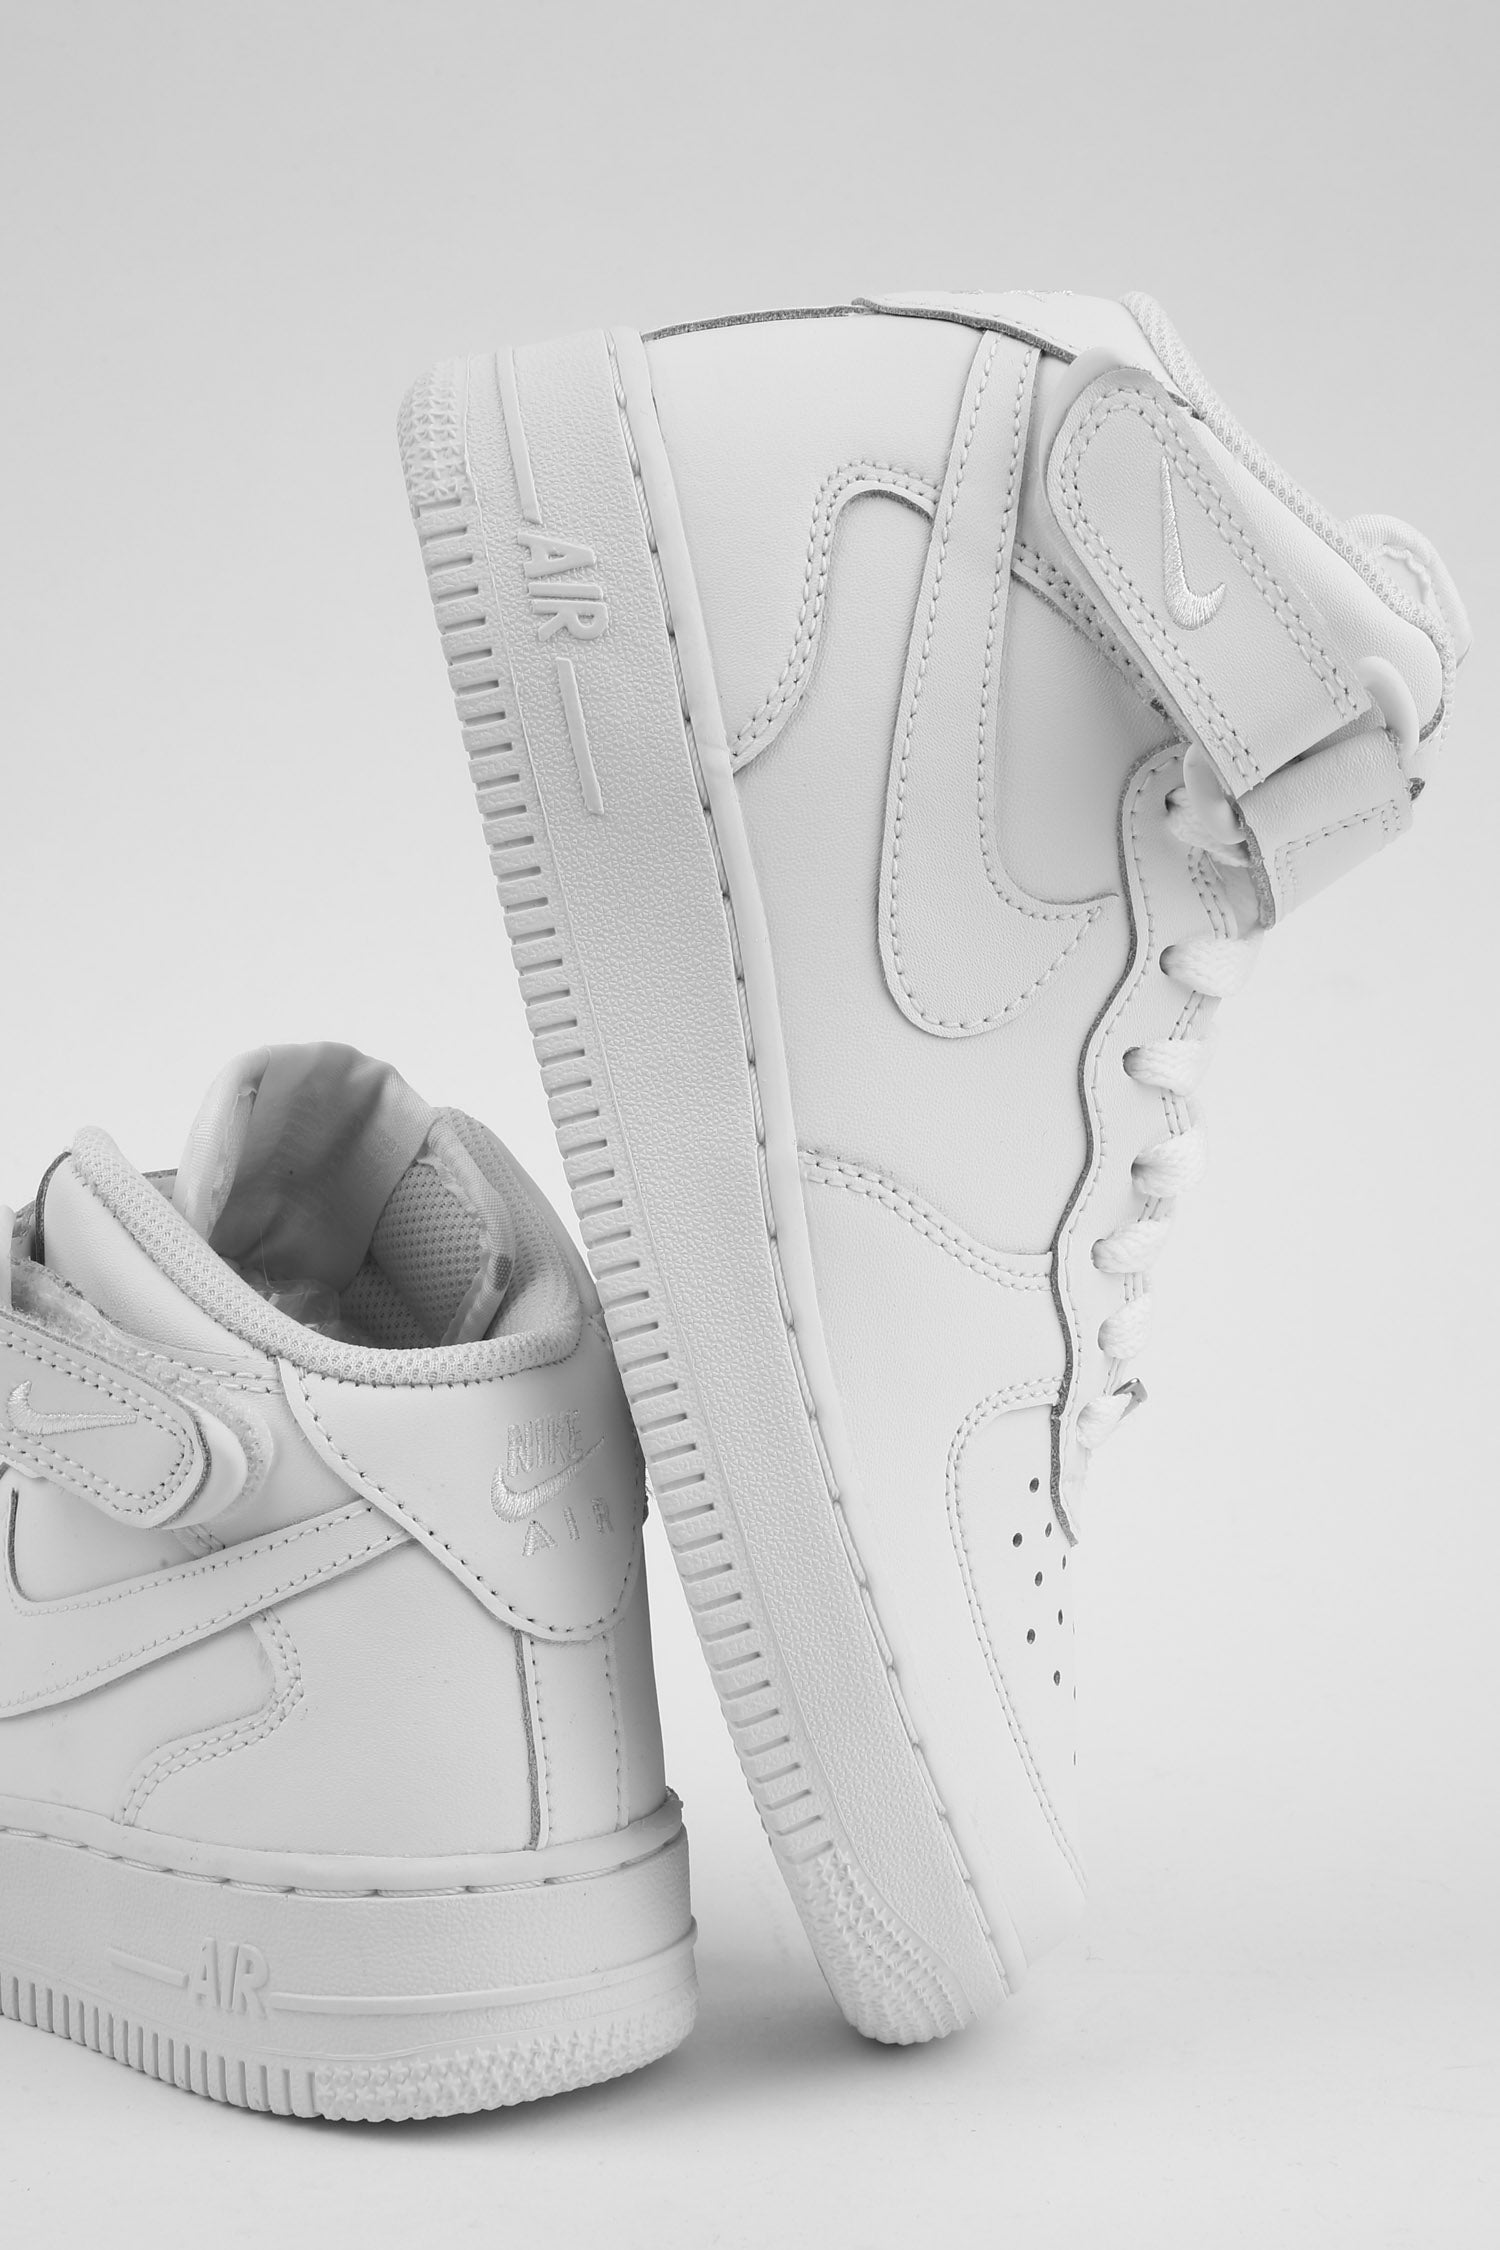 Nike Boys Air Force 1 Mid (GS) Bball WhiteWhite